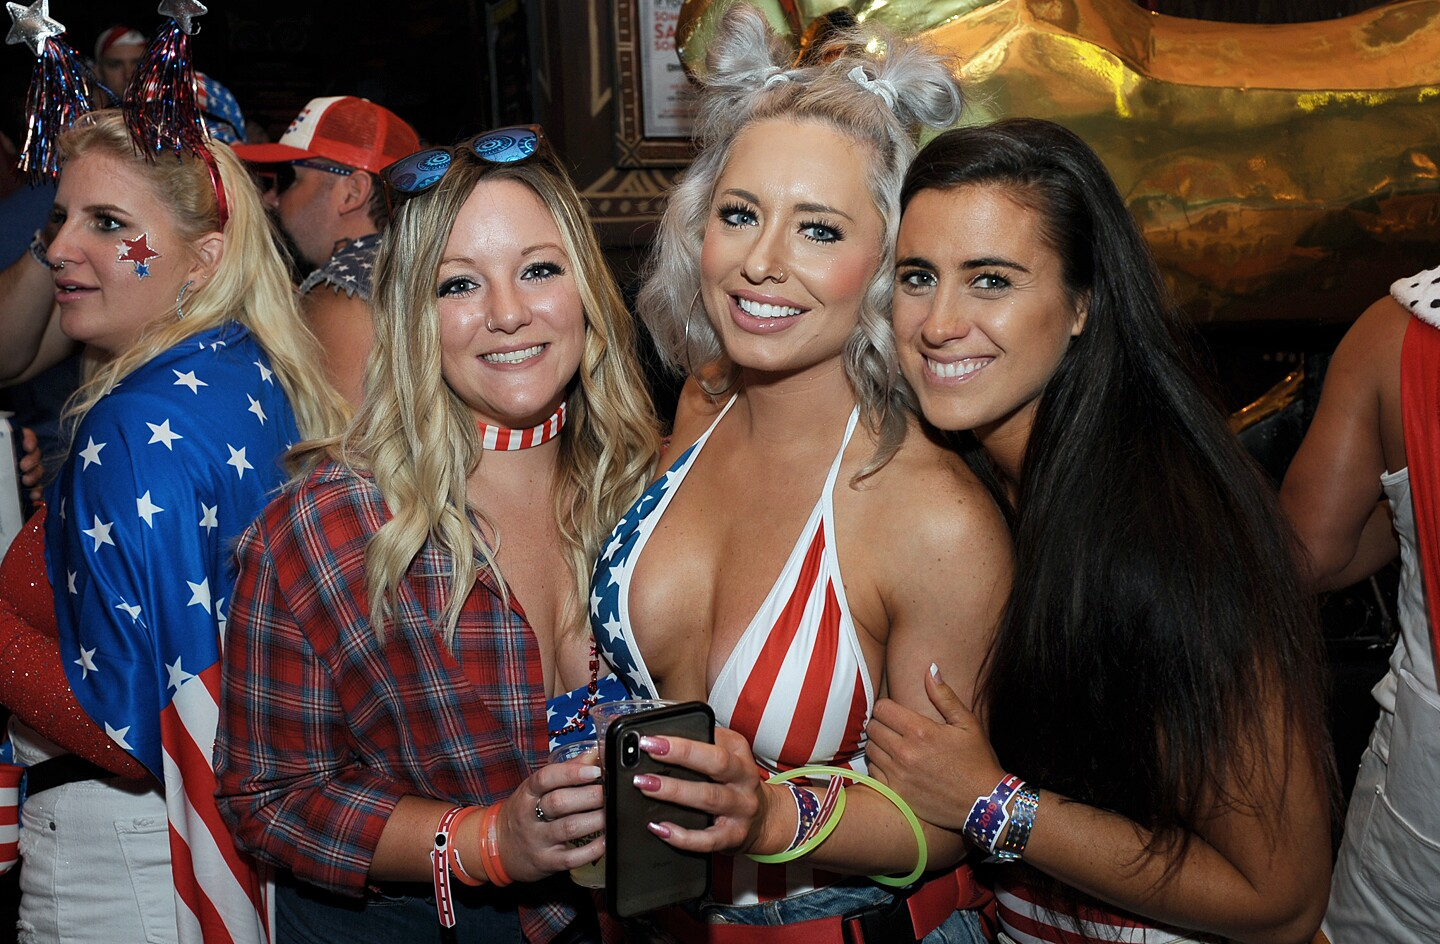 San Diegans celebrated Memorial Day Weekend at Sing Dance Crawl, a patriotic bar crawl through the Gaslamp, on Saturday, May 25, 2019.